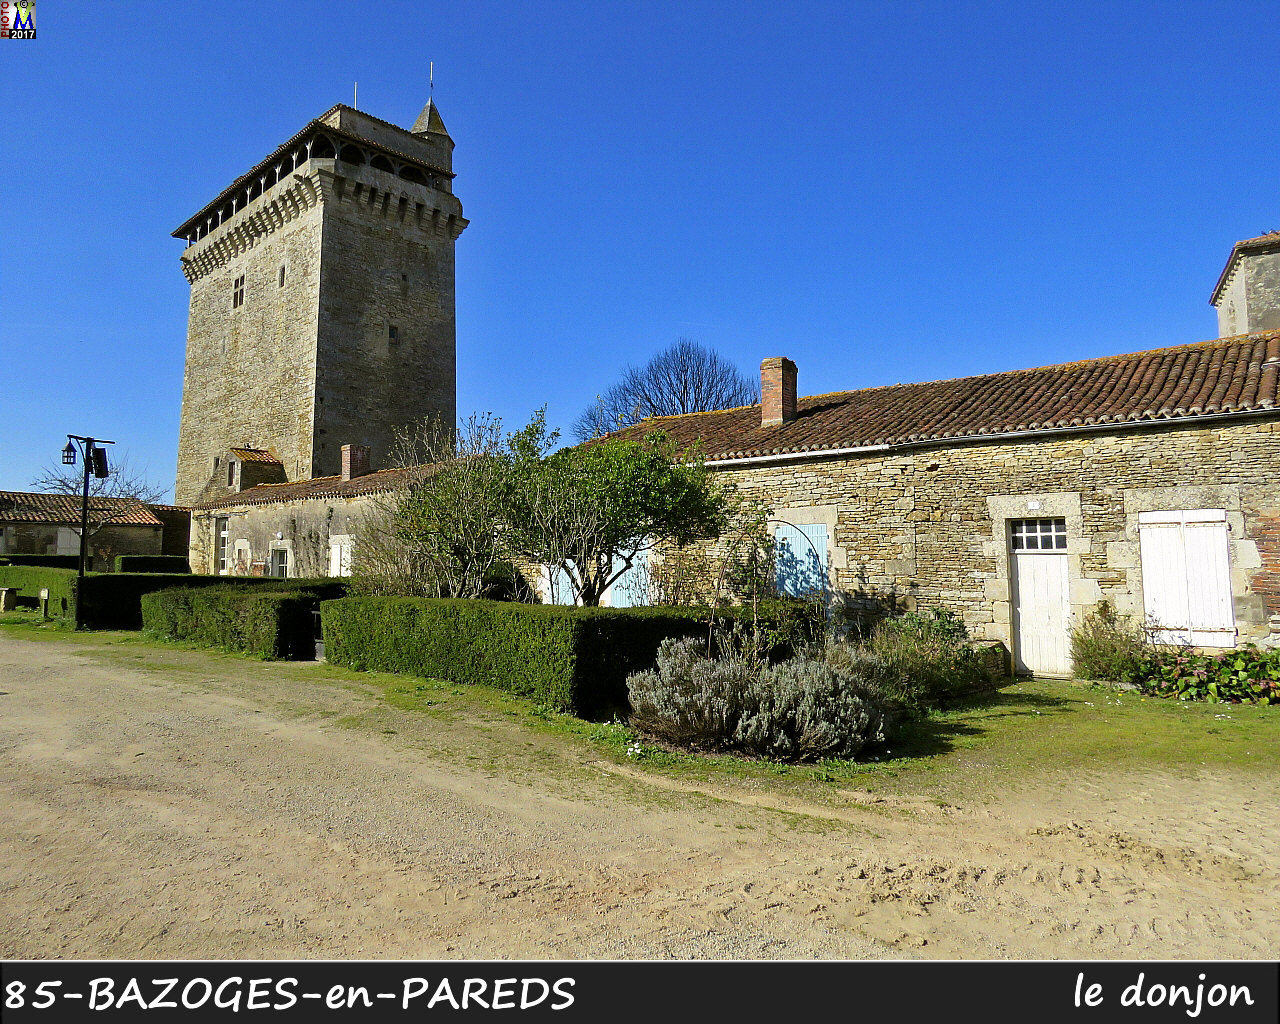 85BAZOGES-PAREDS_donjon_1000.jpg